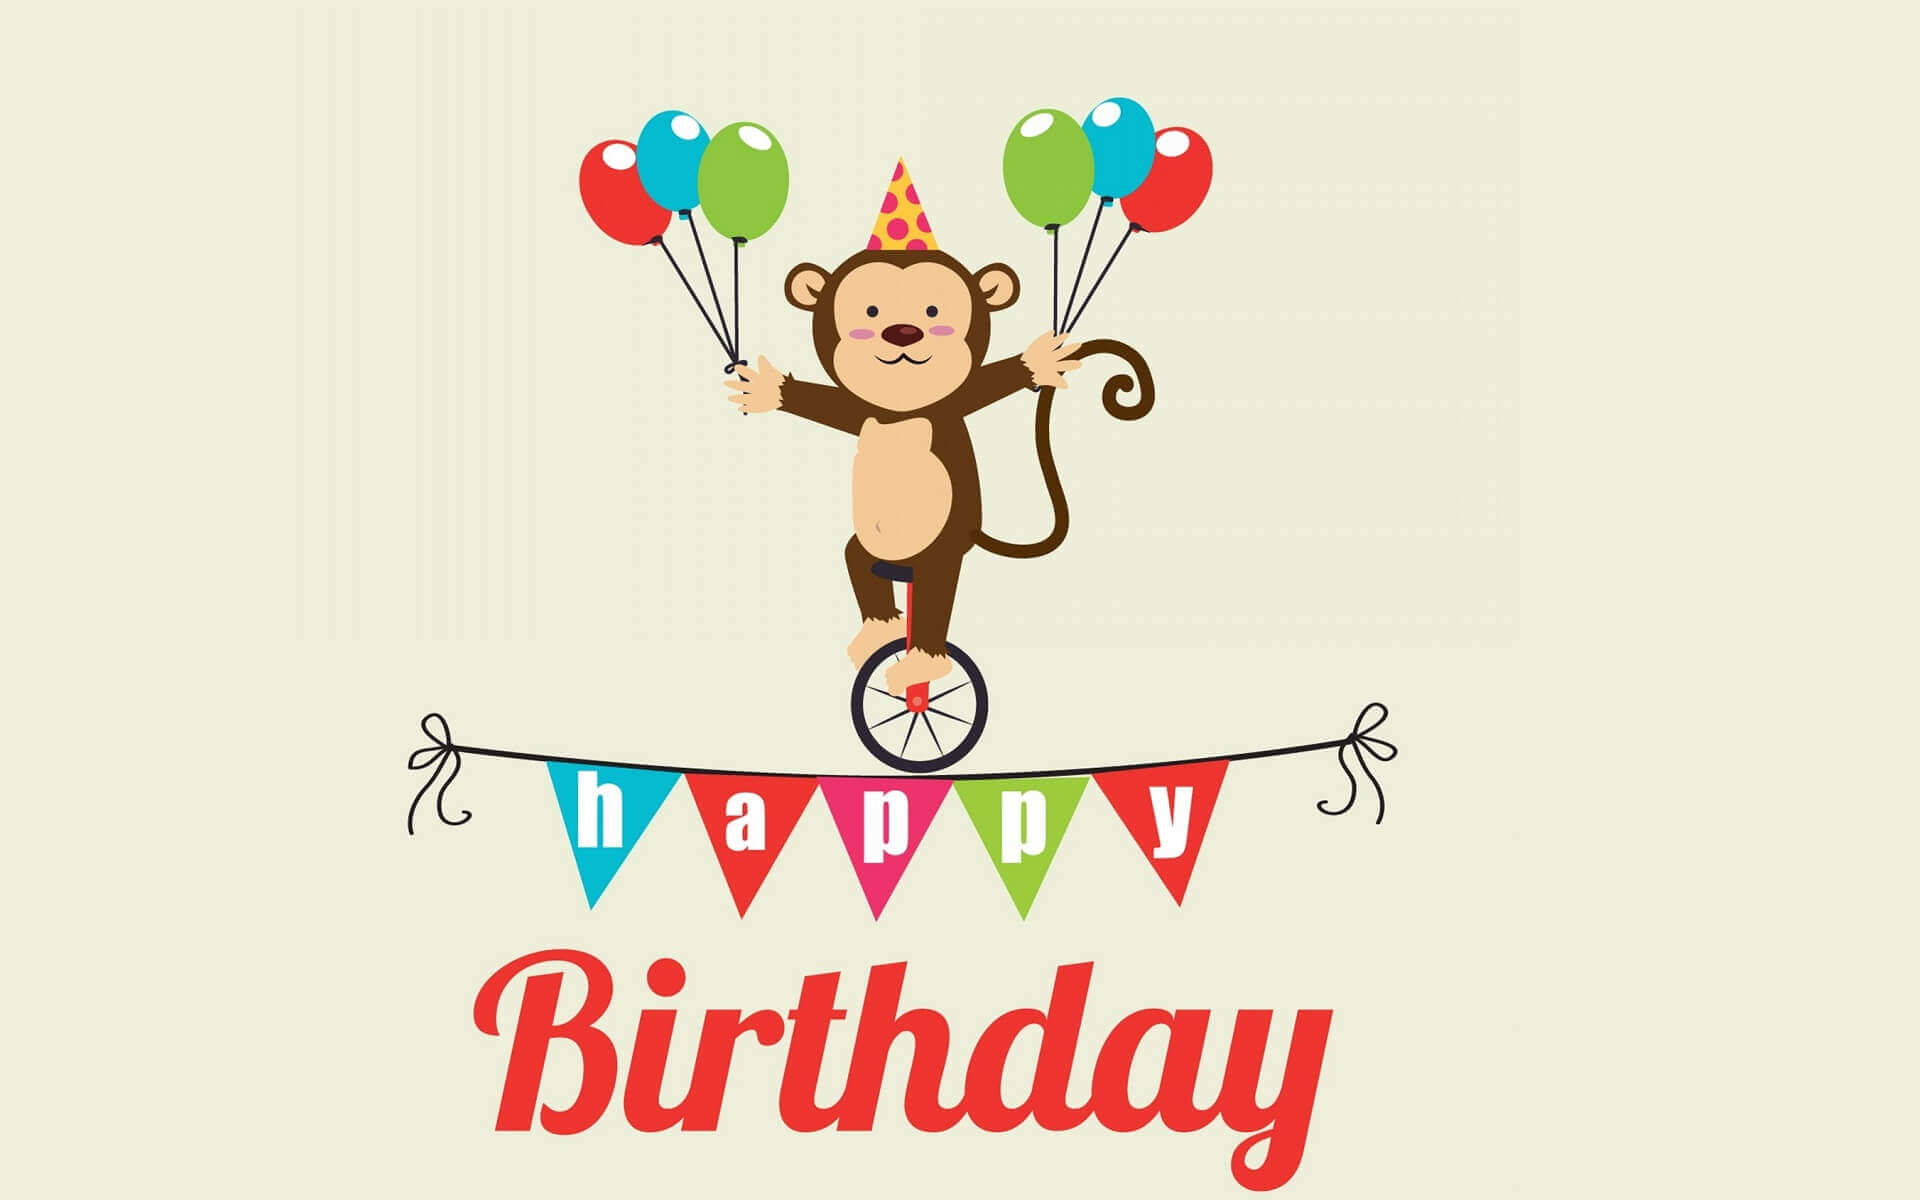 Happy birthday wallpaper funny 54 images - Happy birthday card wallpaper ...